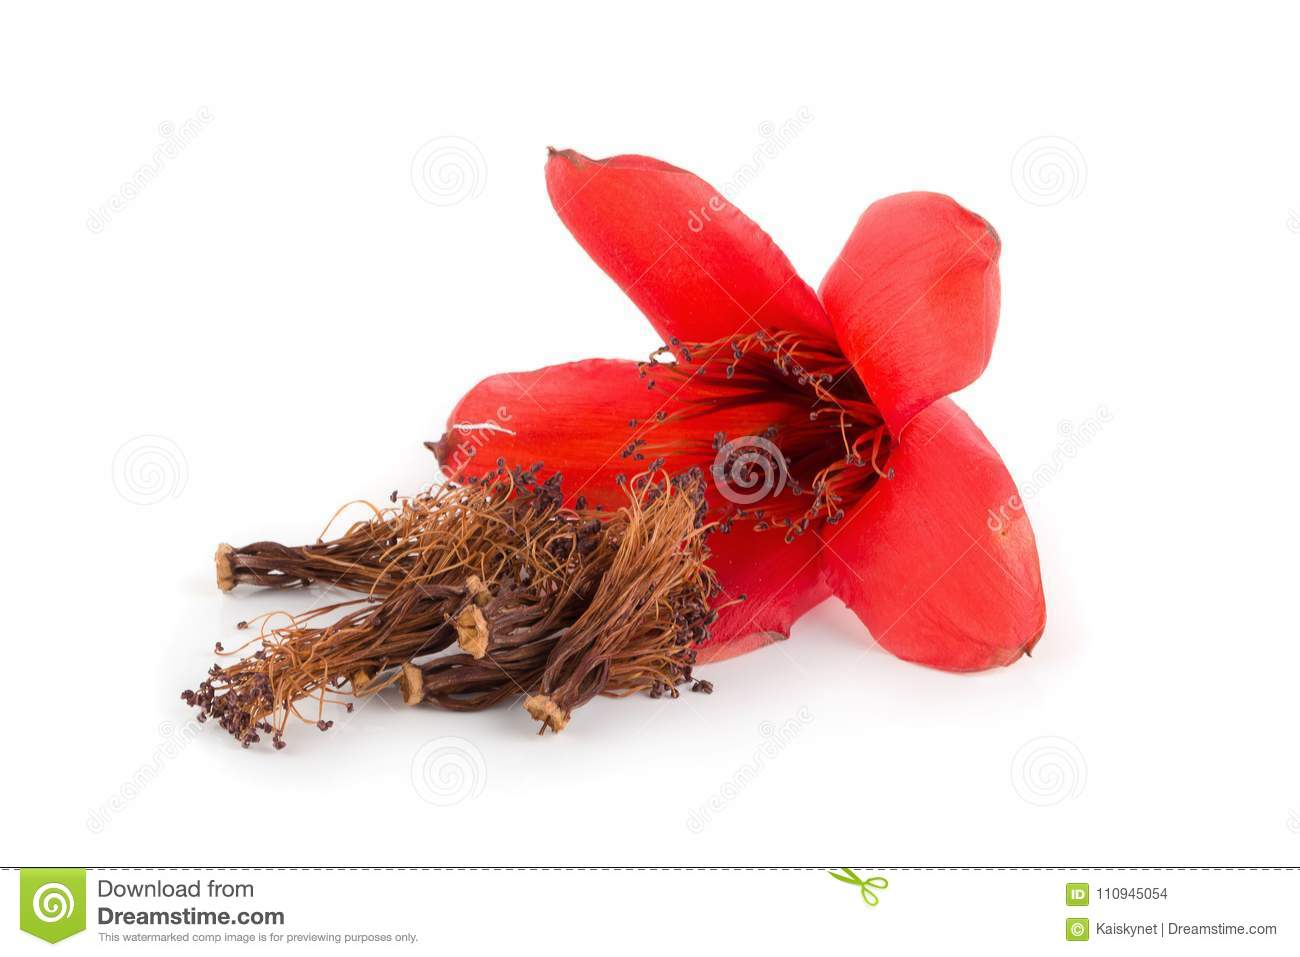 Red cotton tree flowers on white background bombax ceiba flower red cotton tree flowers on white background bombax ceiba flower is a kind of traditional chinese medicine mightylinksfo